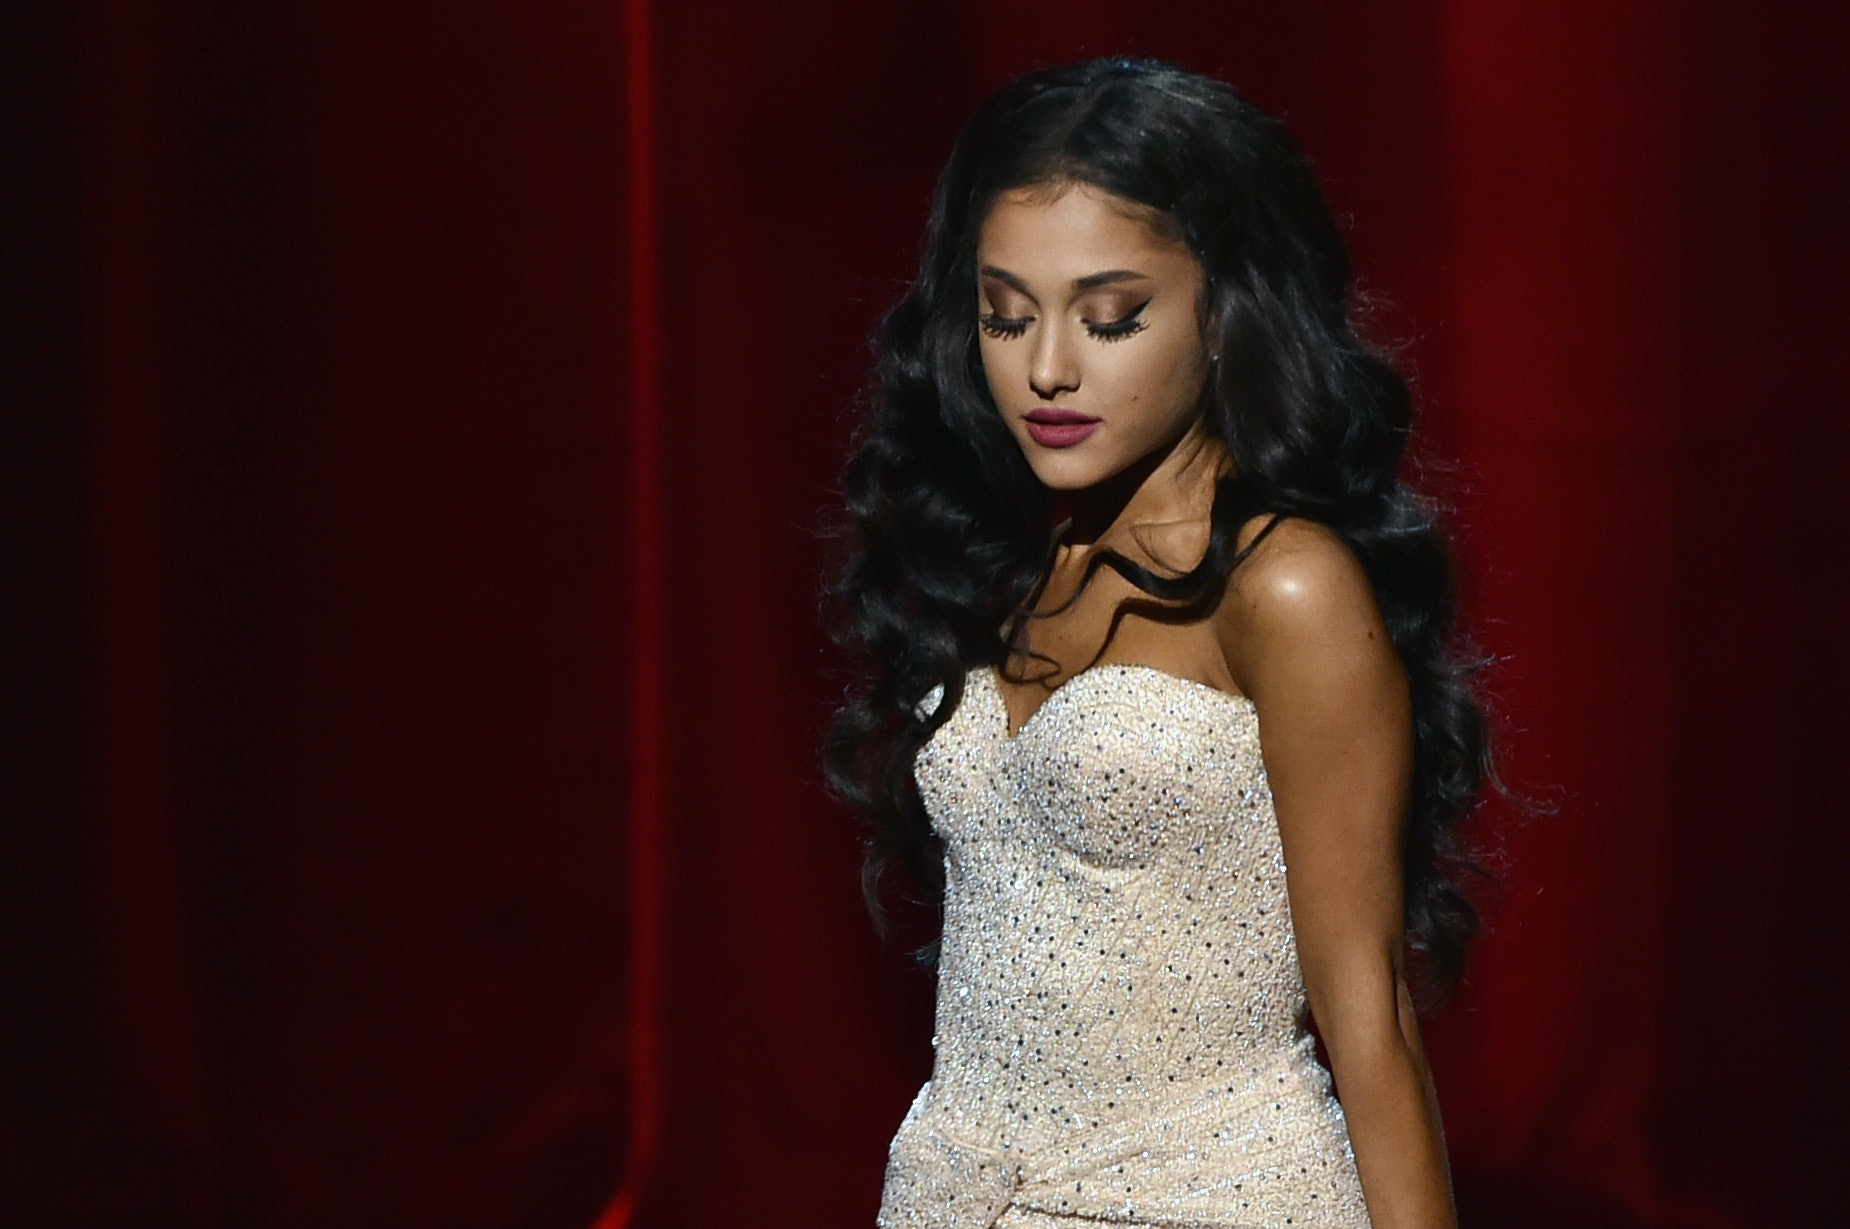 Ariana Grande Has Wardrobe Malfunction While Hosting 'Saturday Night Live'